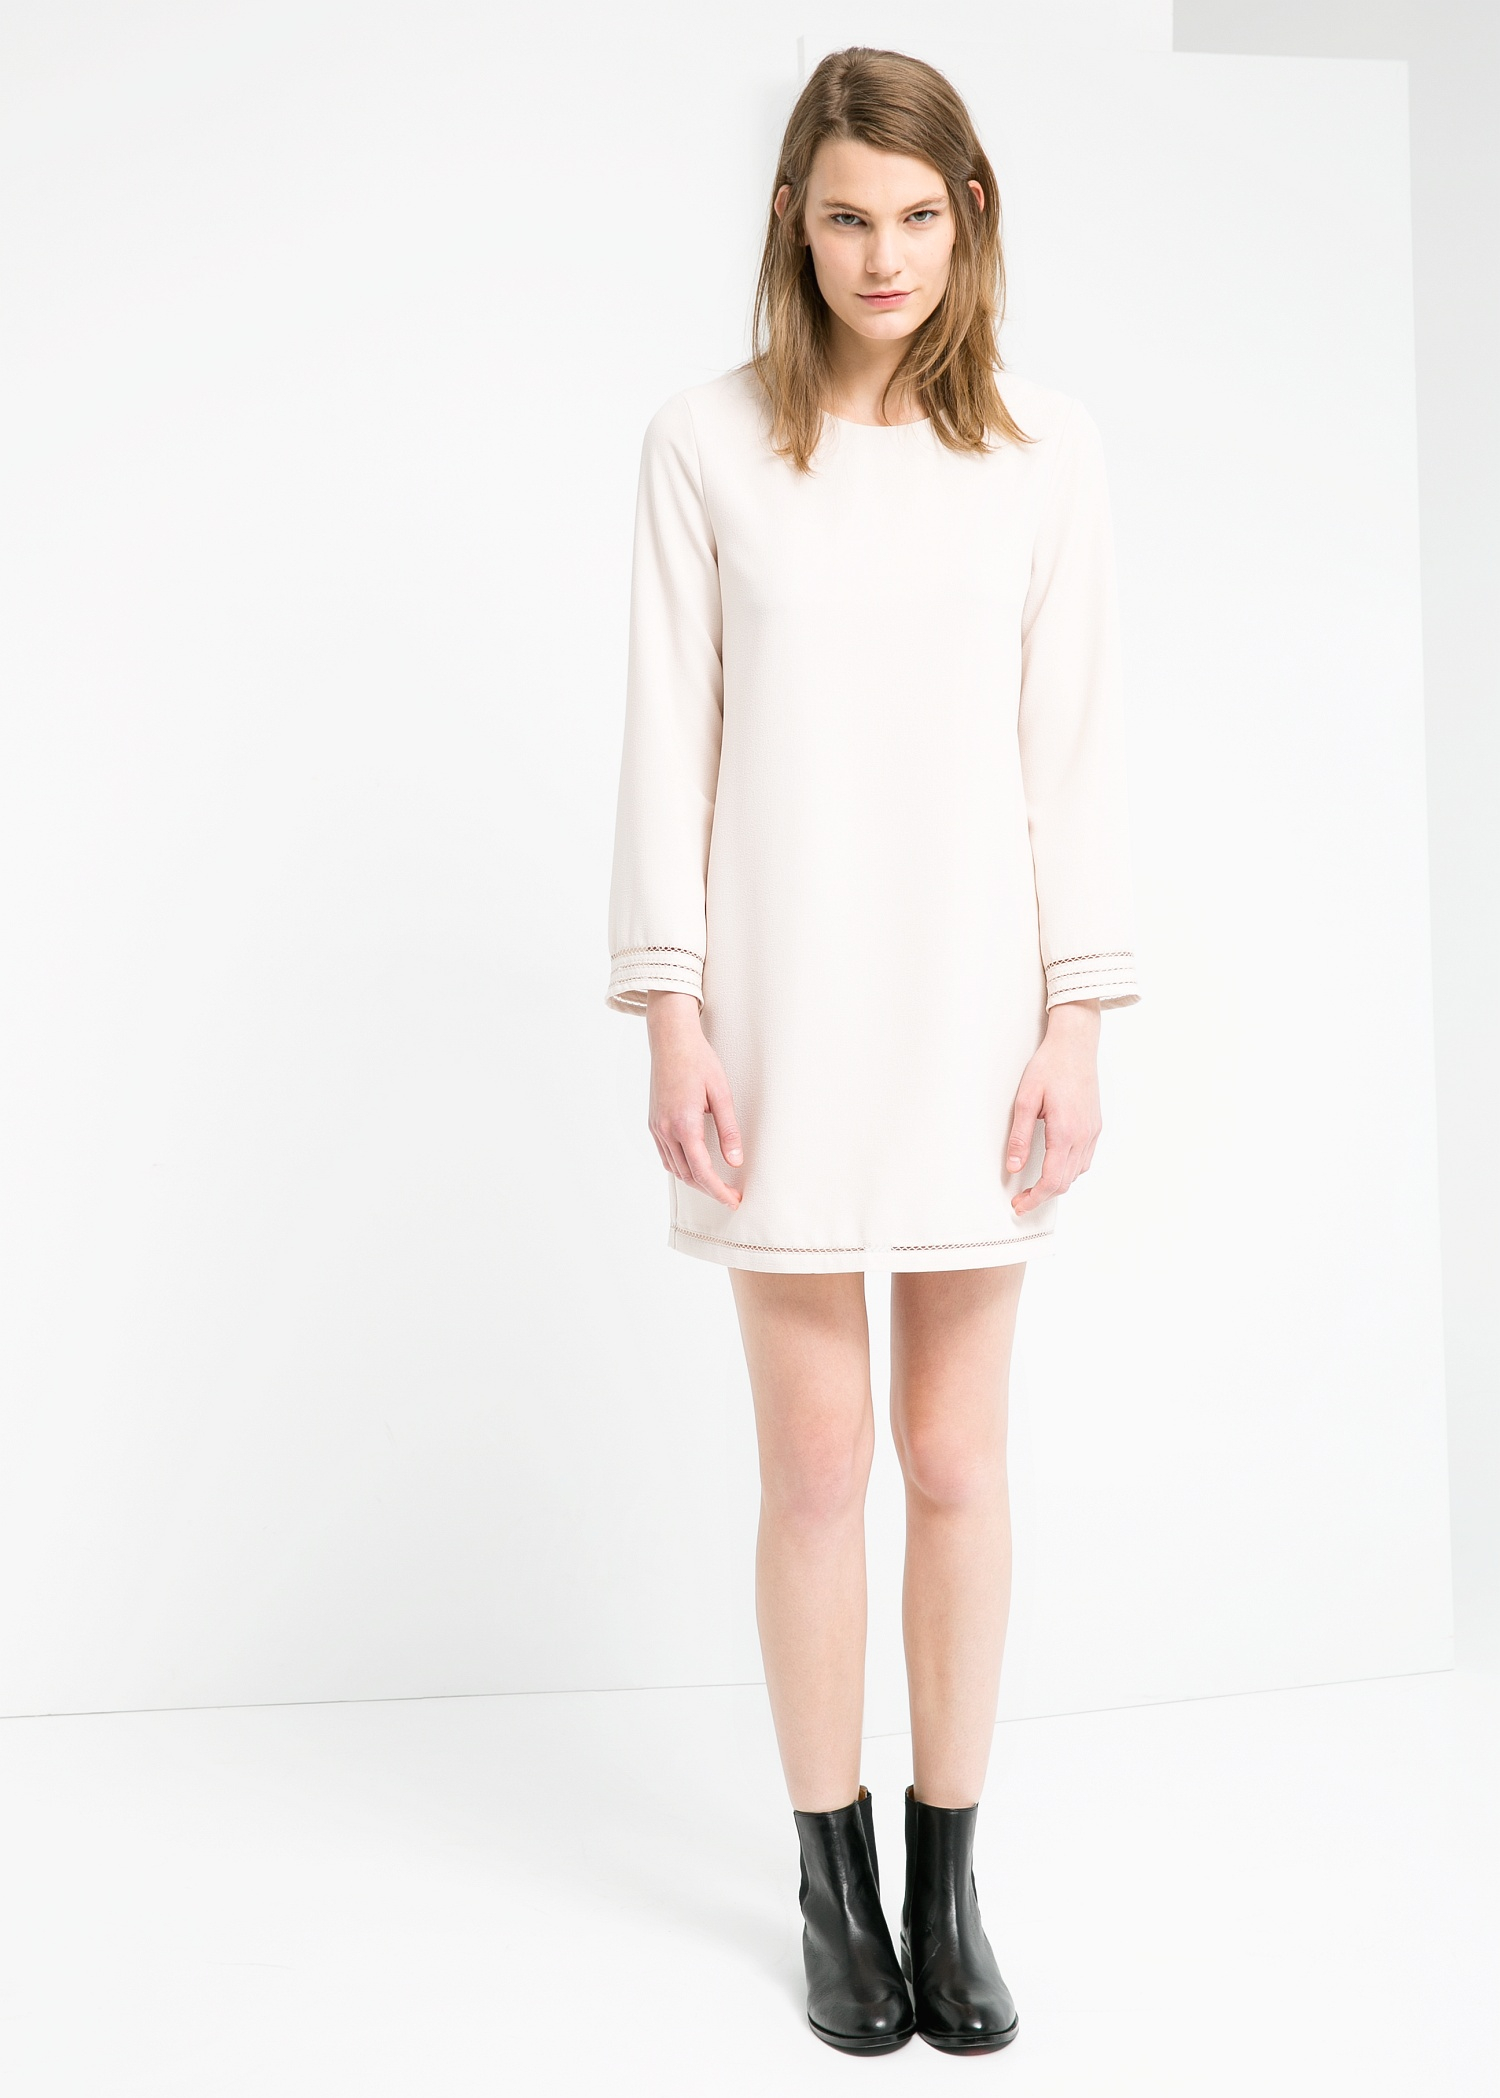 Lyst - Mango Crepe Shift Dress in Natural 2905ee066